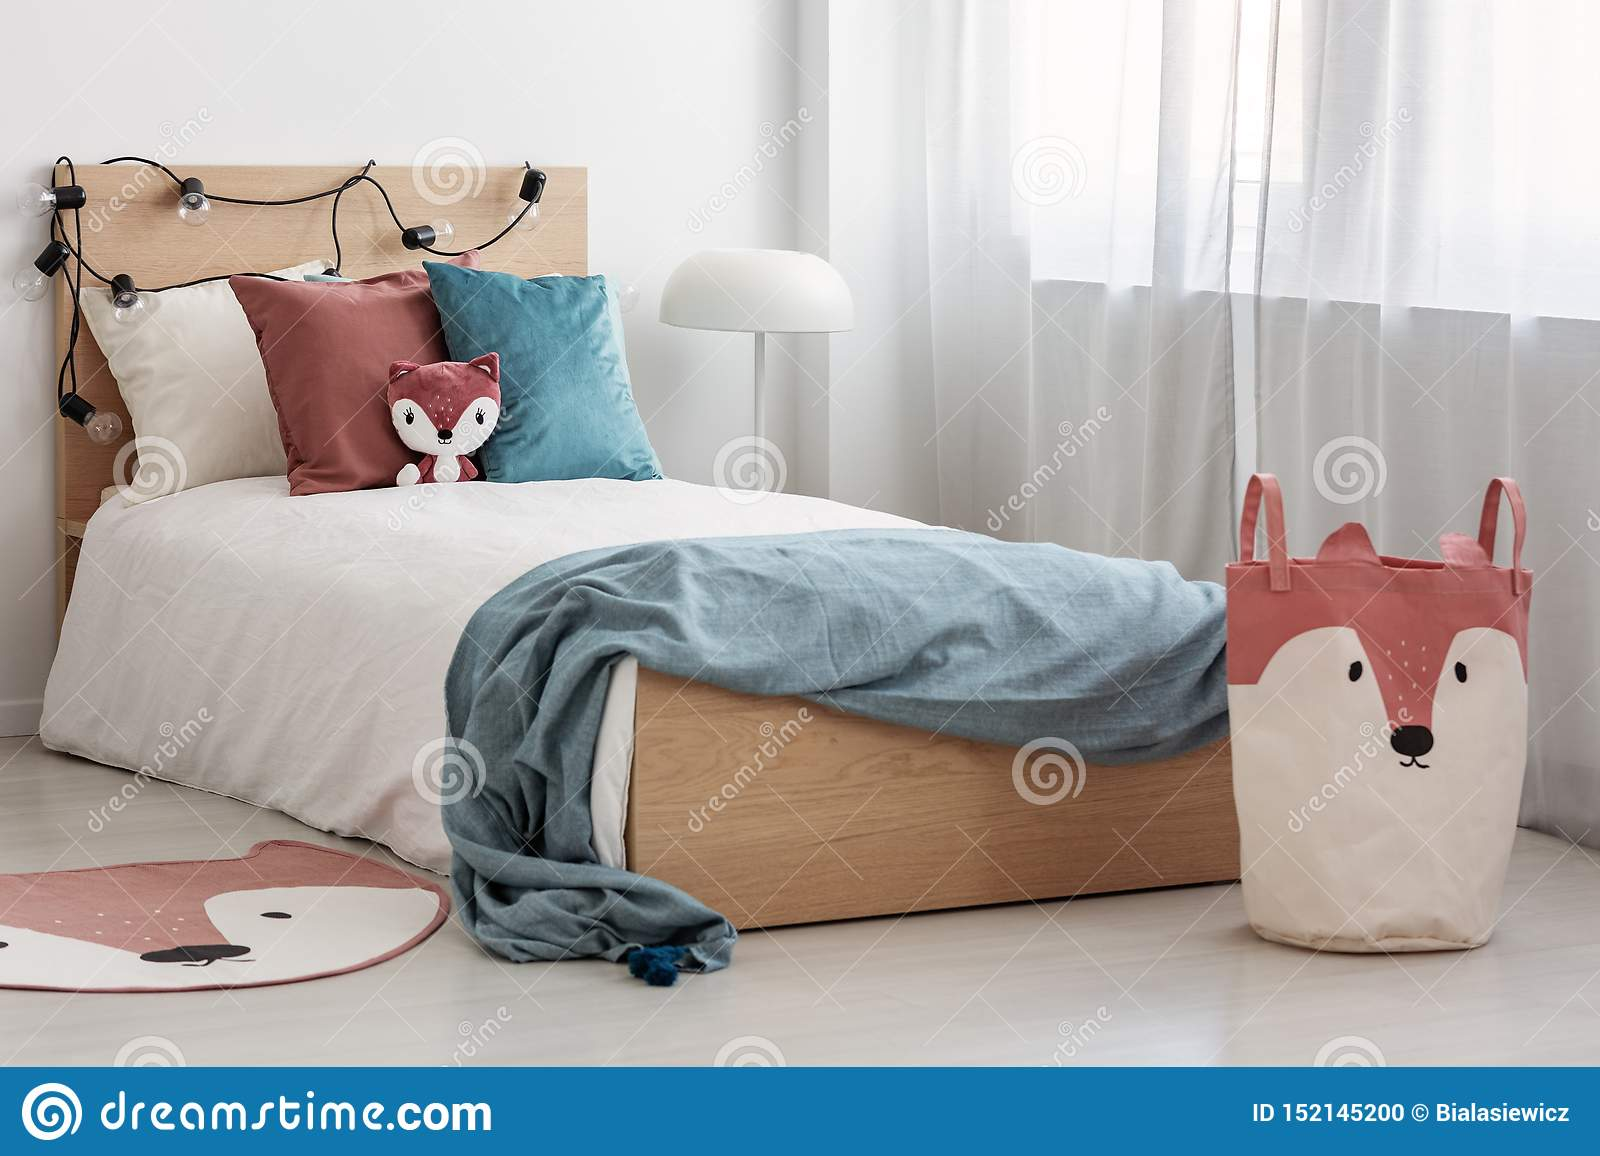 Bright Bedroom Interior With Single Bed With Turquoise Blanket On White Bedding And Colorful Pillows And Toy Stock Photo Image Of Chic Design 152145200